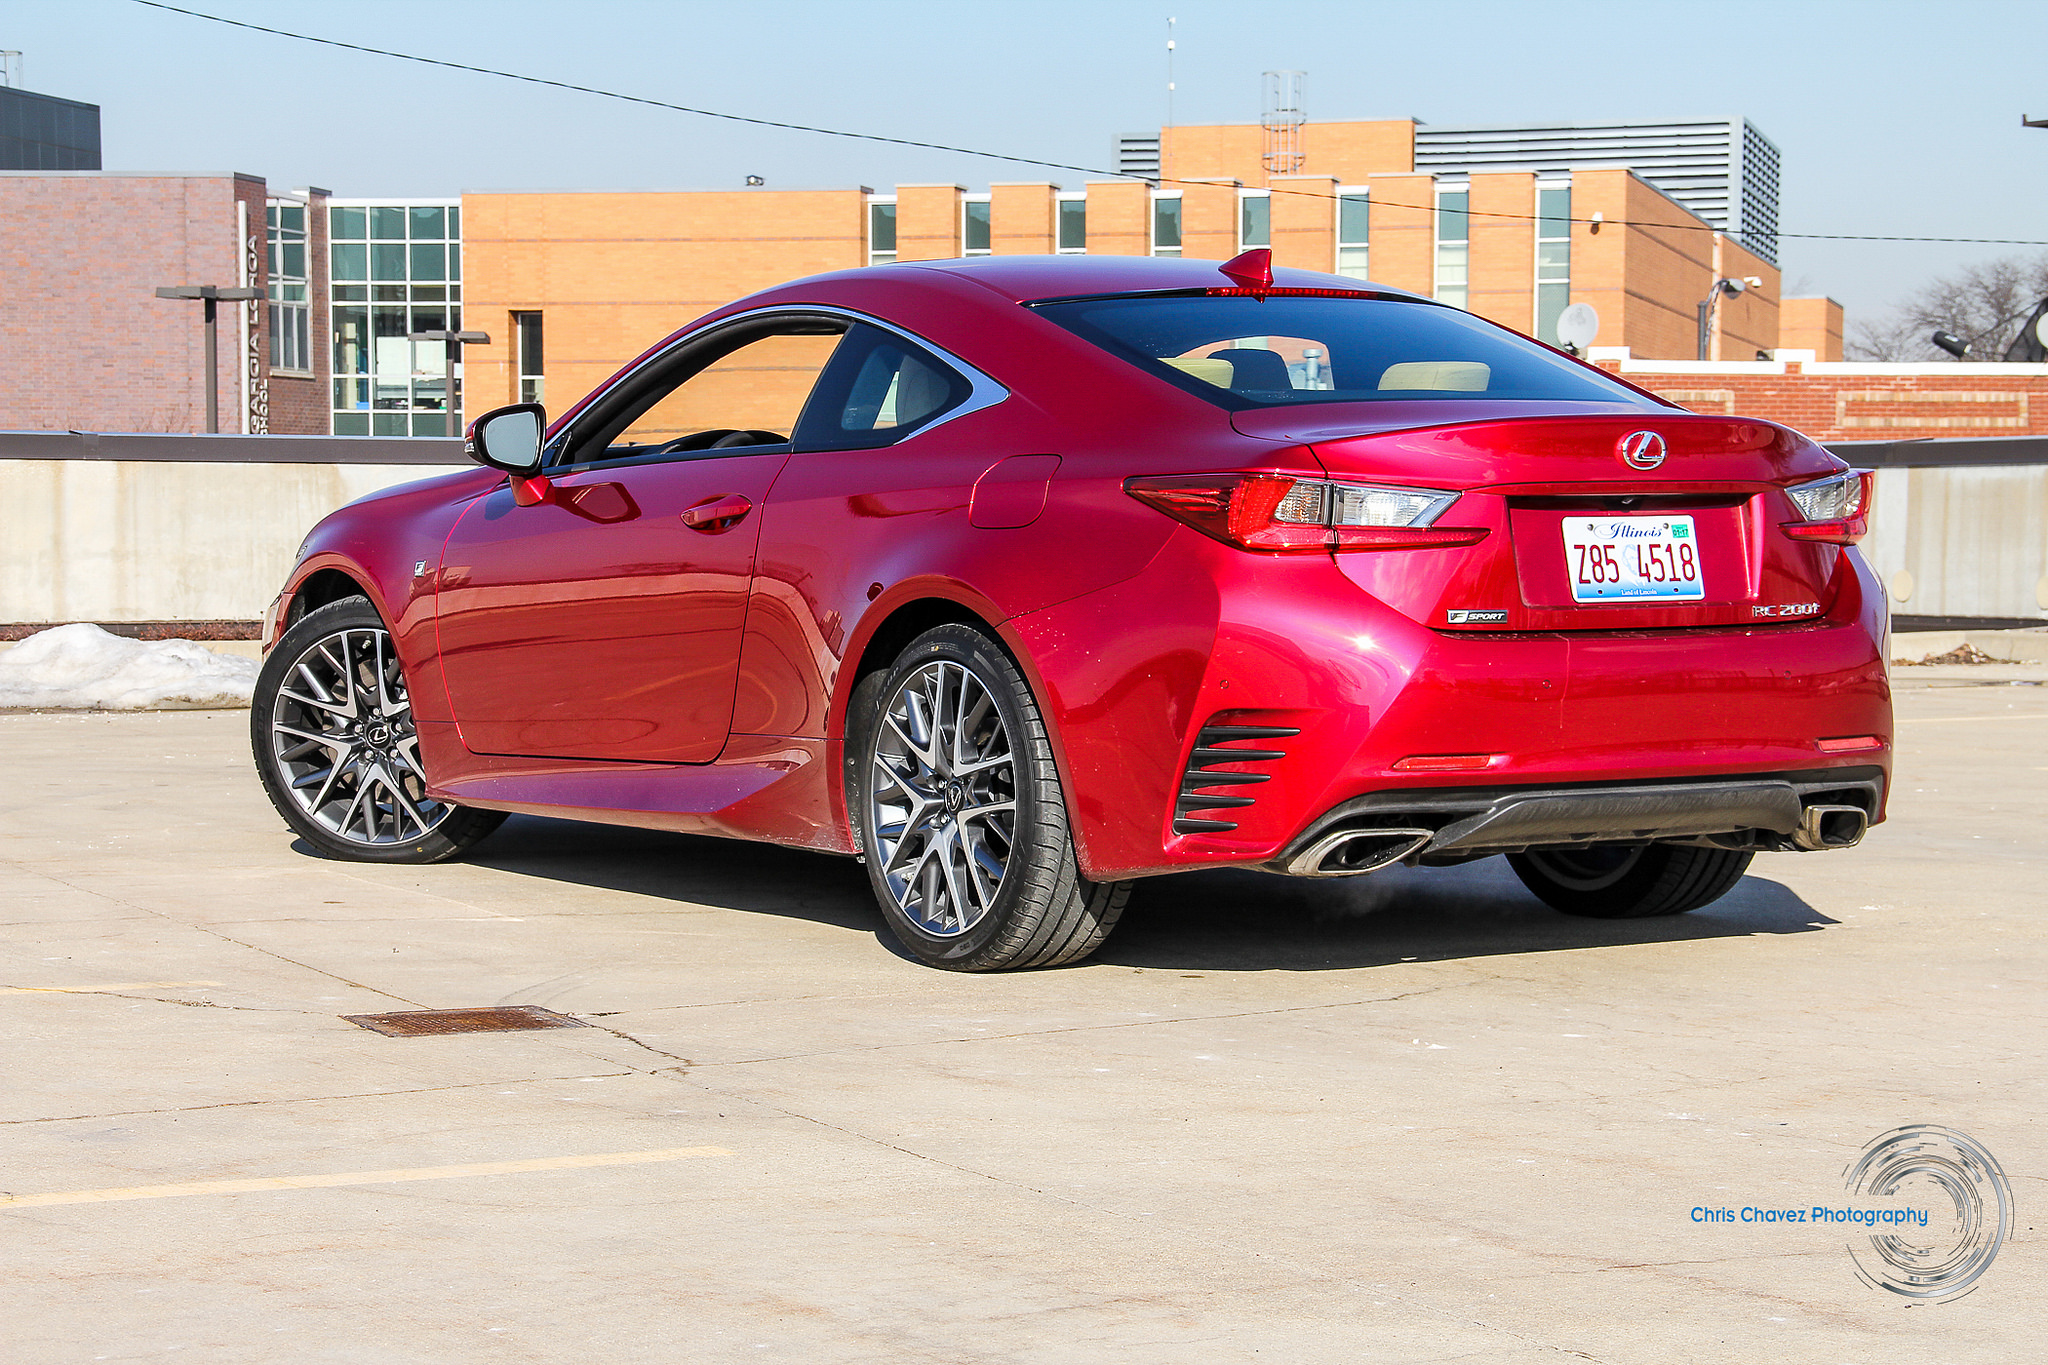 2017 Lexus RC photo - 3